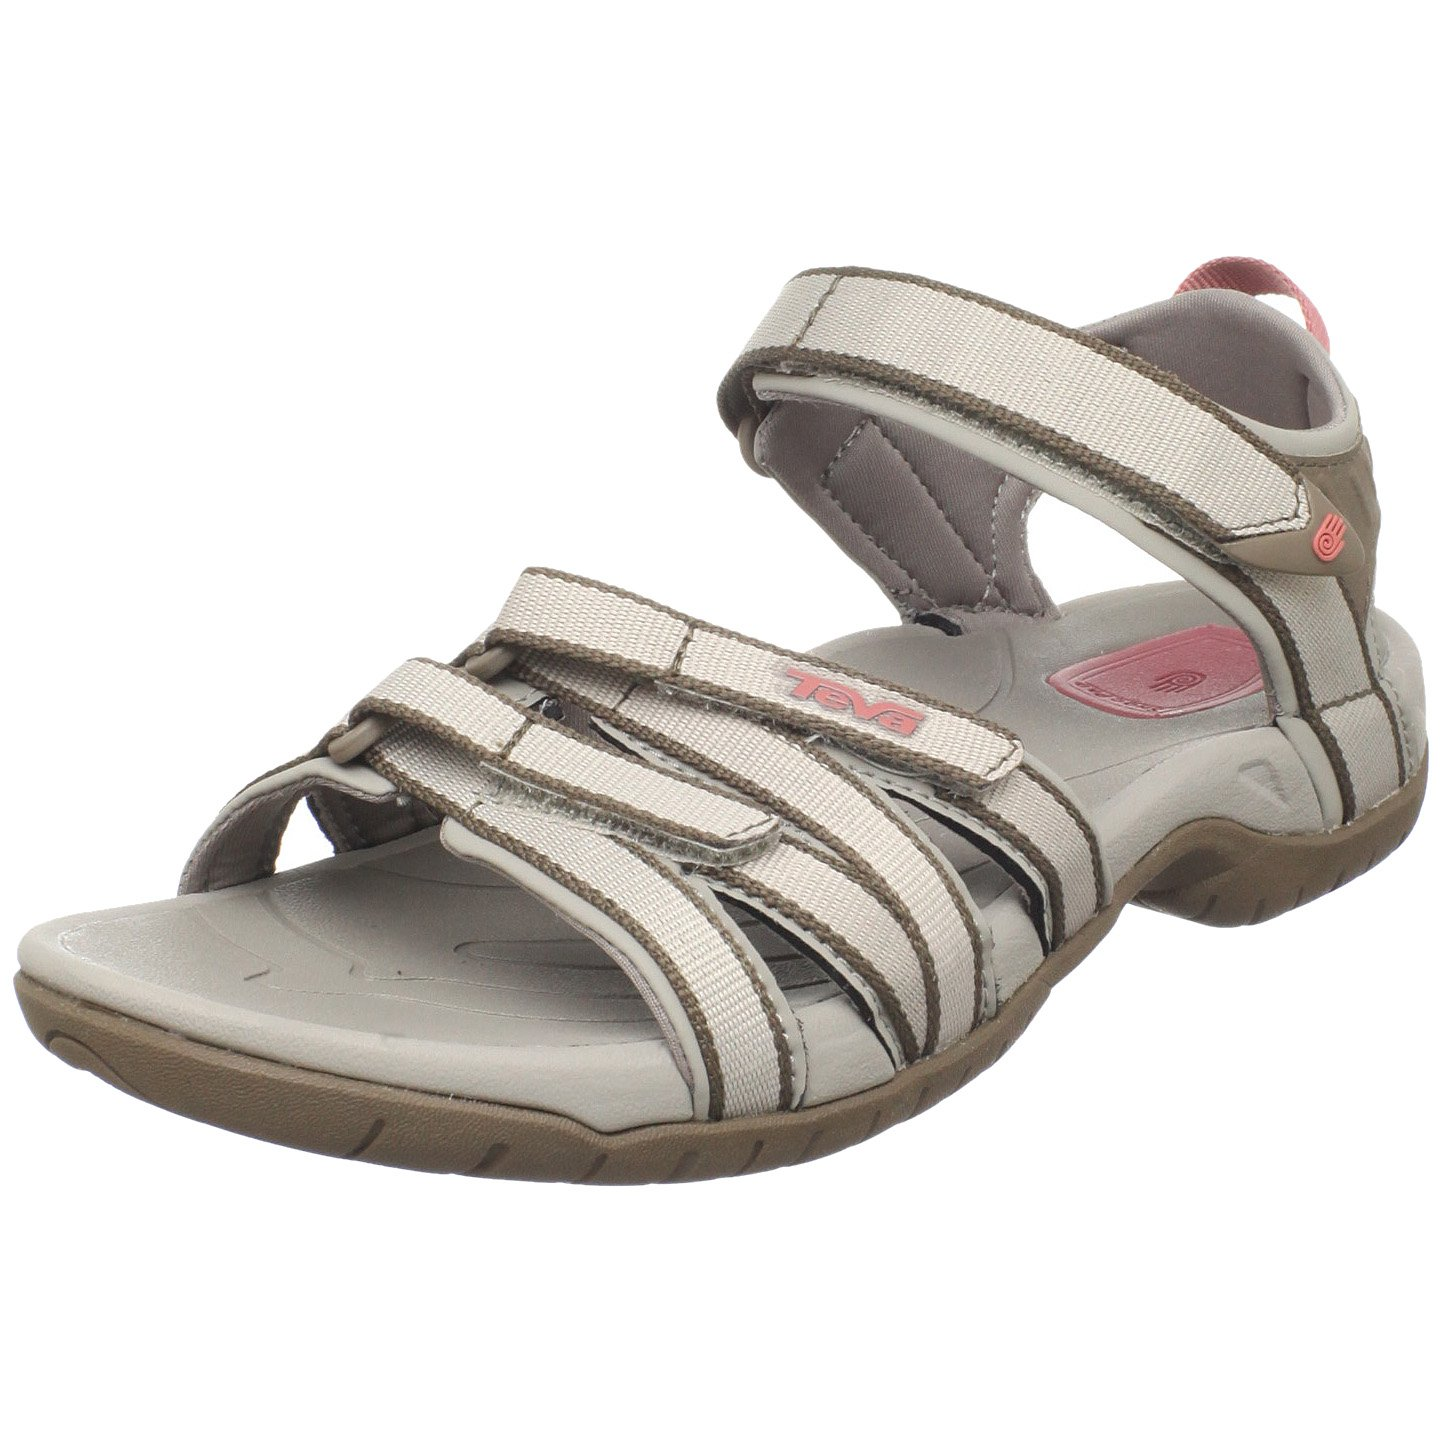 b8f5fea510292f Get Quotations · Teva Women s Tirra Athletic Sandal